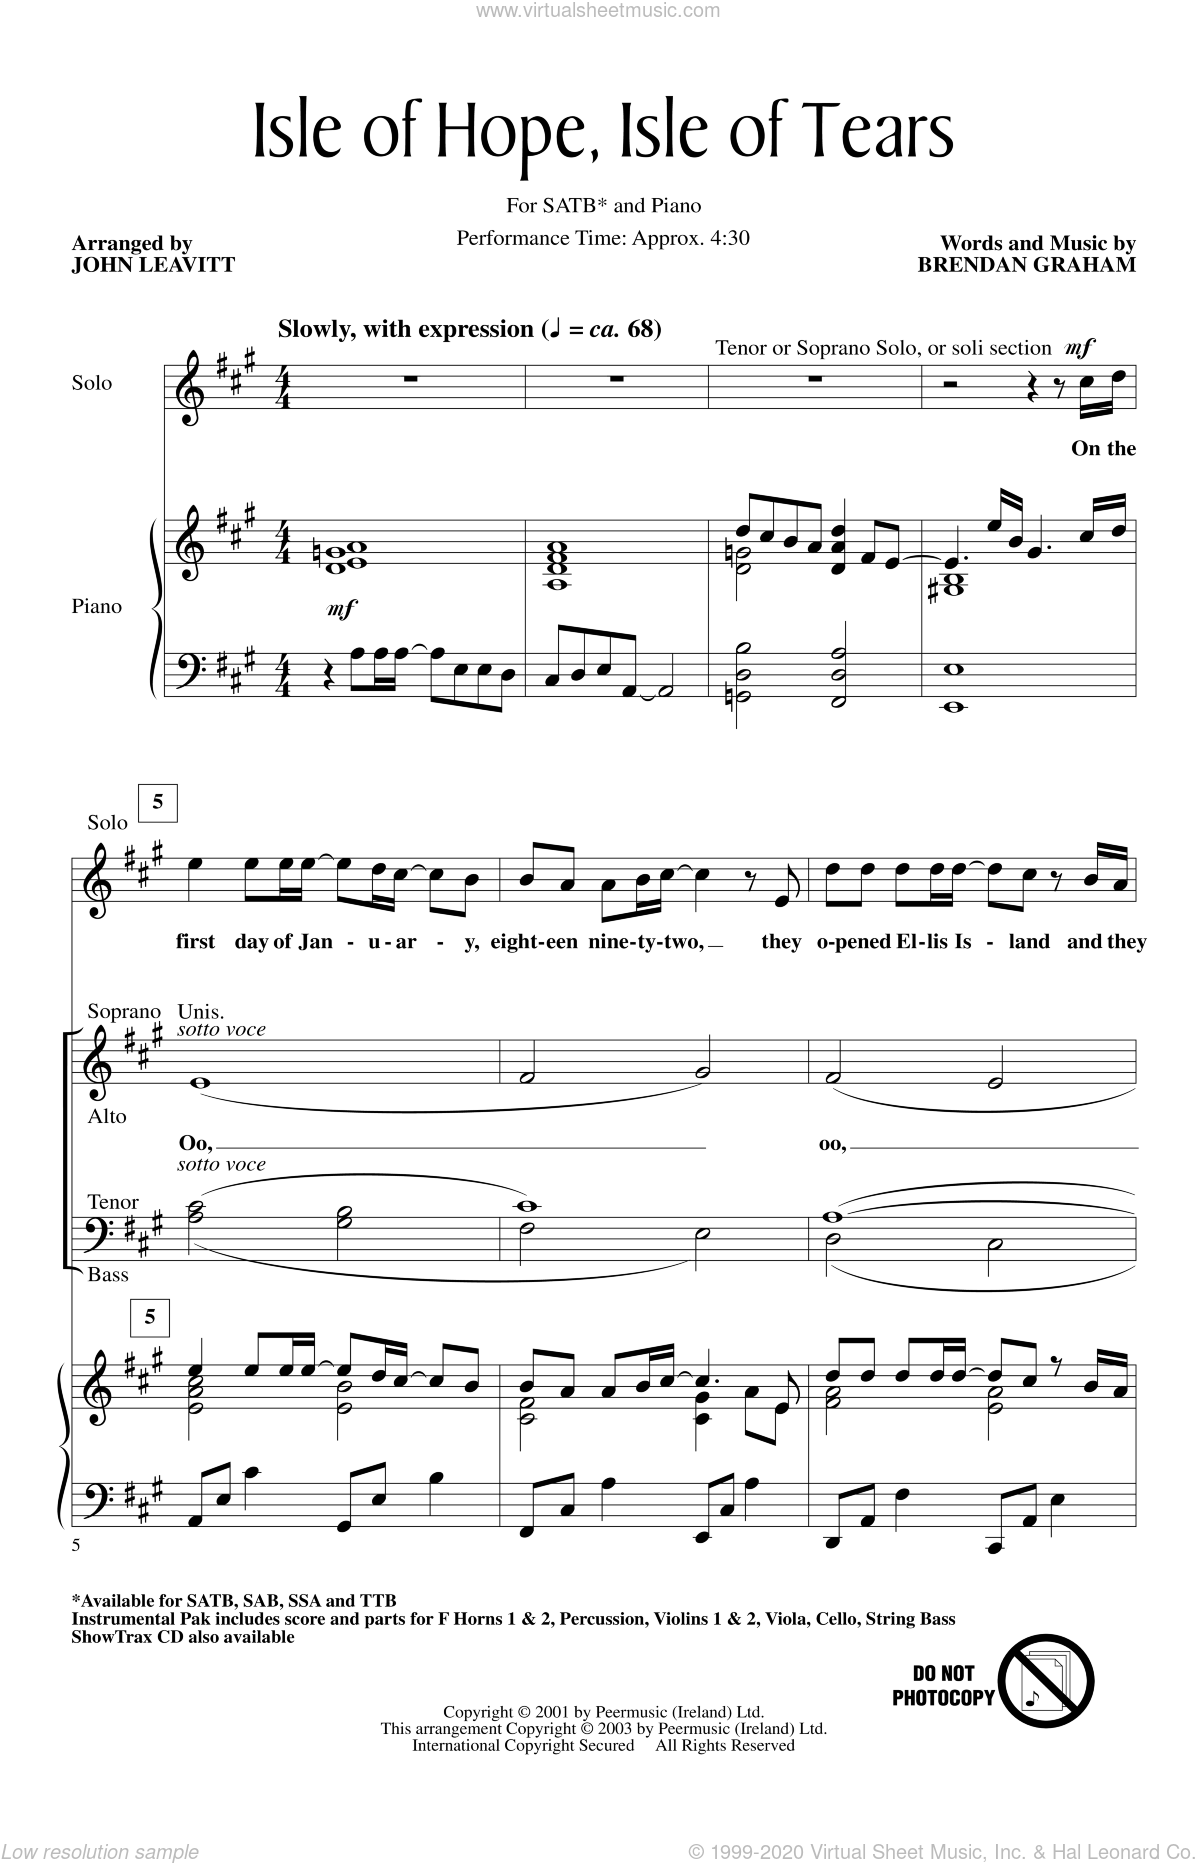 Isle Of Hope, Isle Of Tears sheet music for choir and piano (SATB) by Brendan Graham